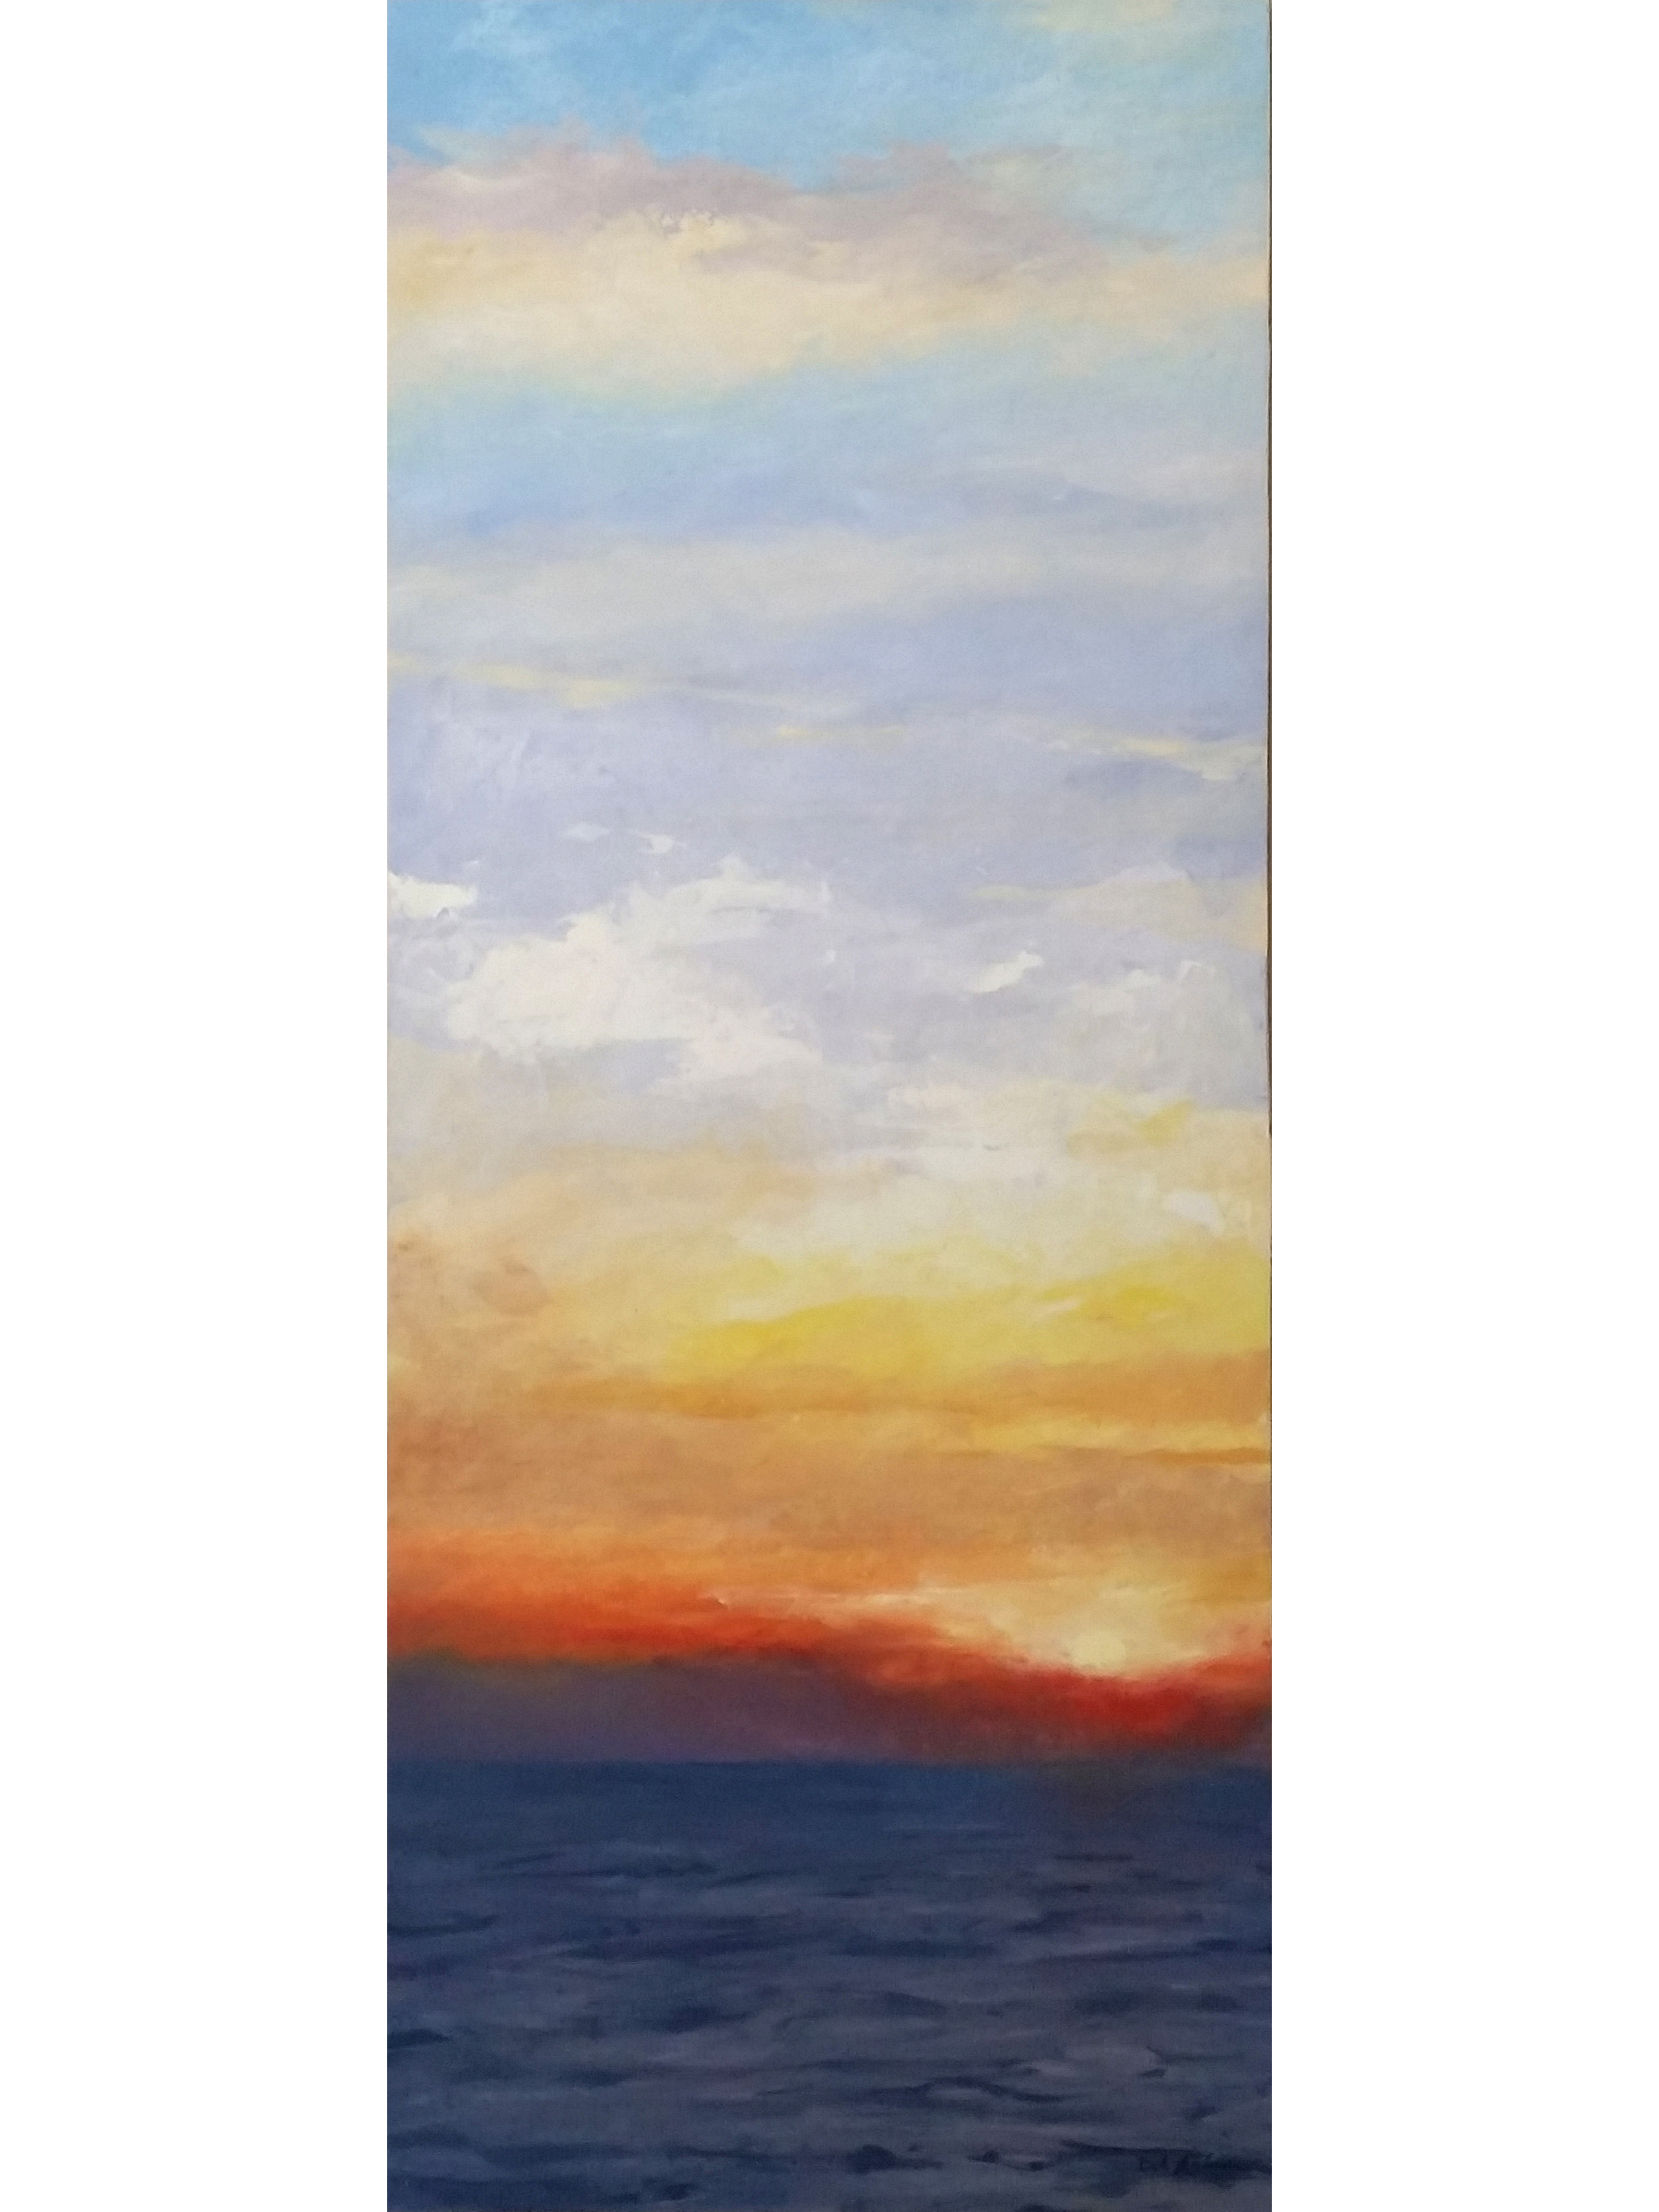 Oil painting, original artwork, of a brilliant sunrise sky over water.